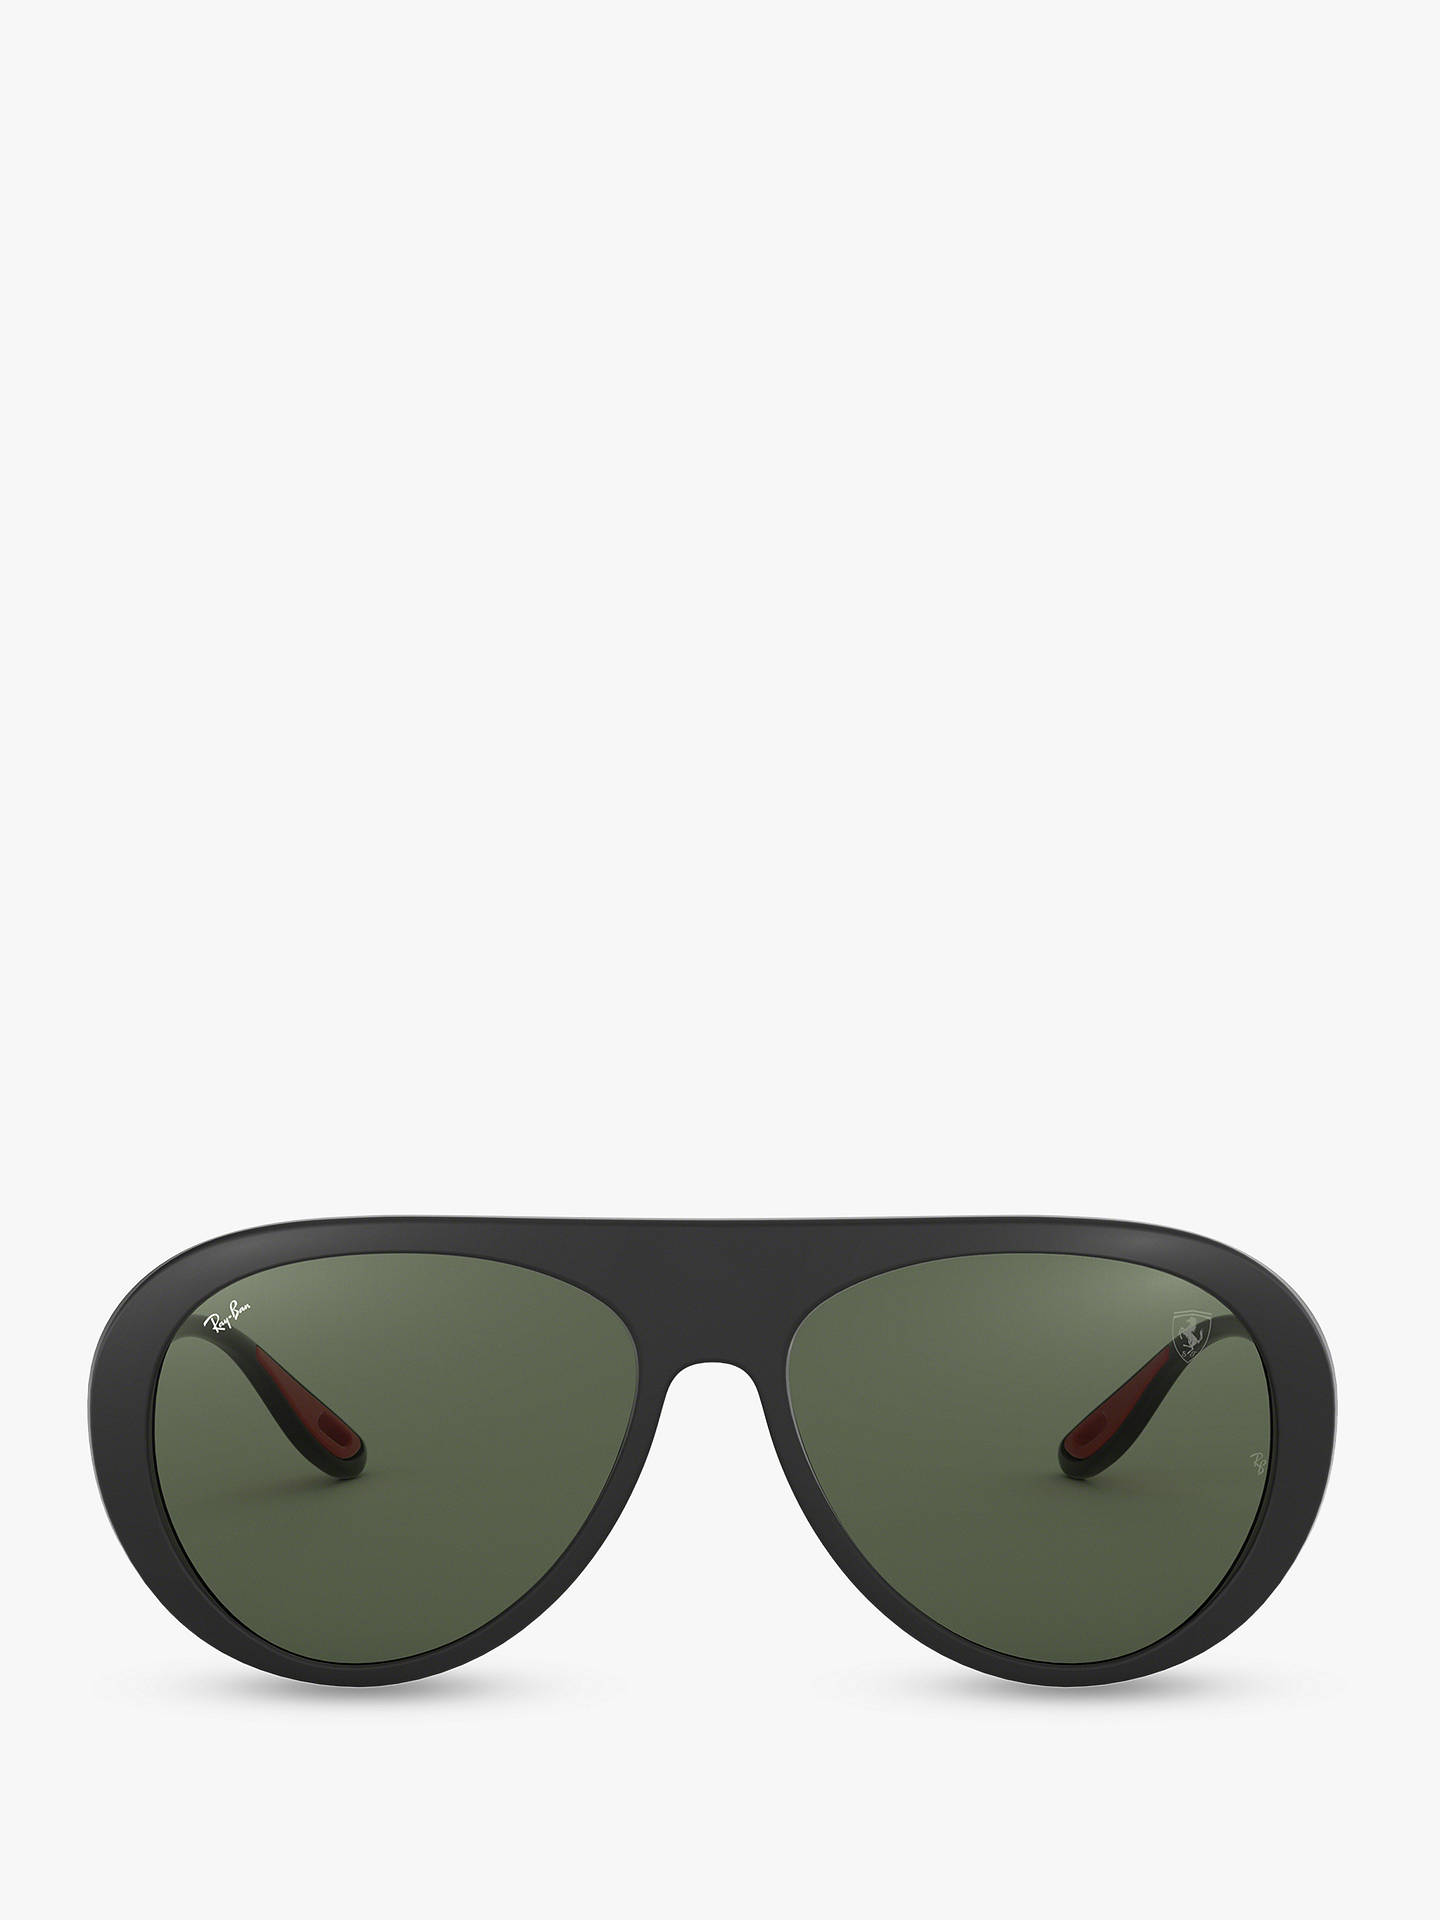 7de5314d7f ... BuyRay-Ban RB4310M Women s Scuderia Ferrari Collection Aviator  Sunglasses